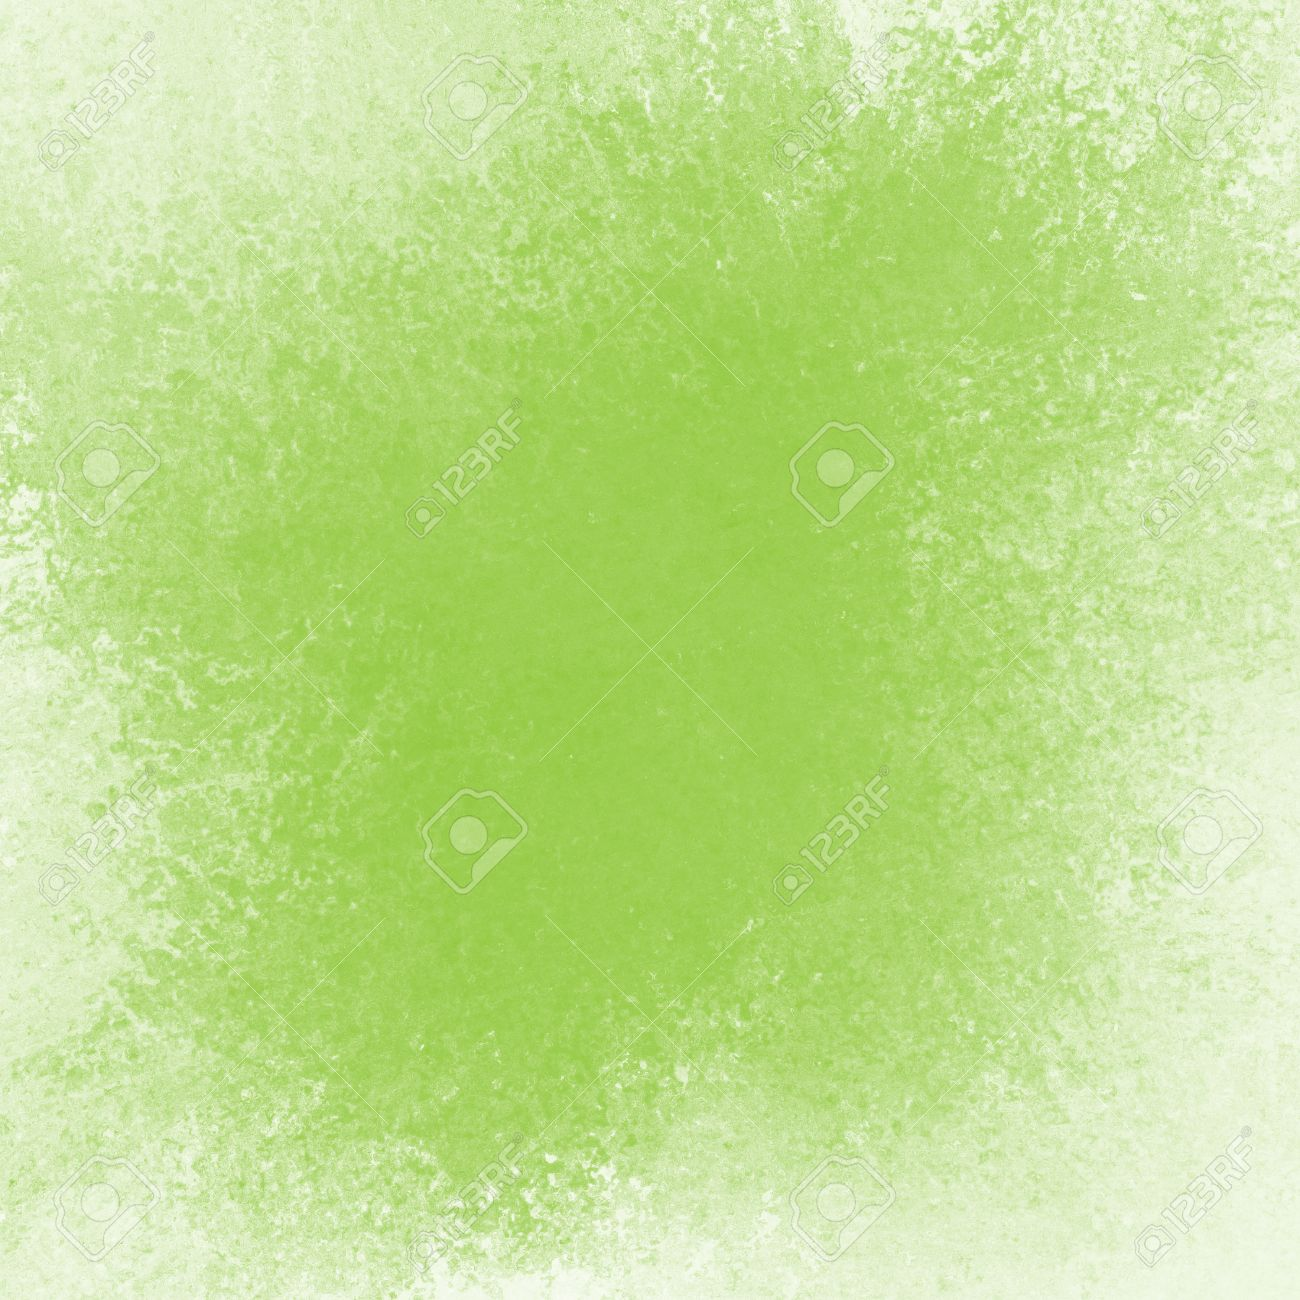 Web colors lime - Faded Lime Green Background Vintage Texture And Faded White Color Sponged Distressed Texture In